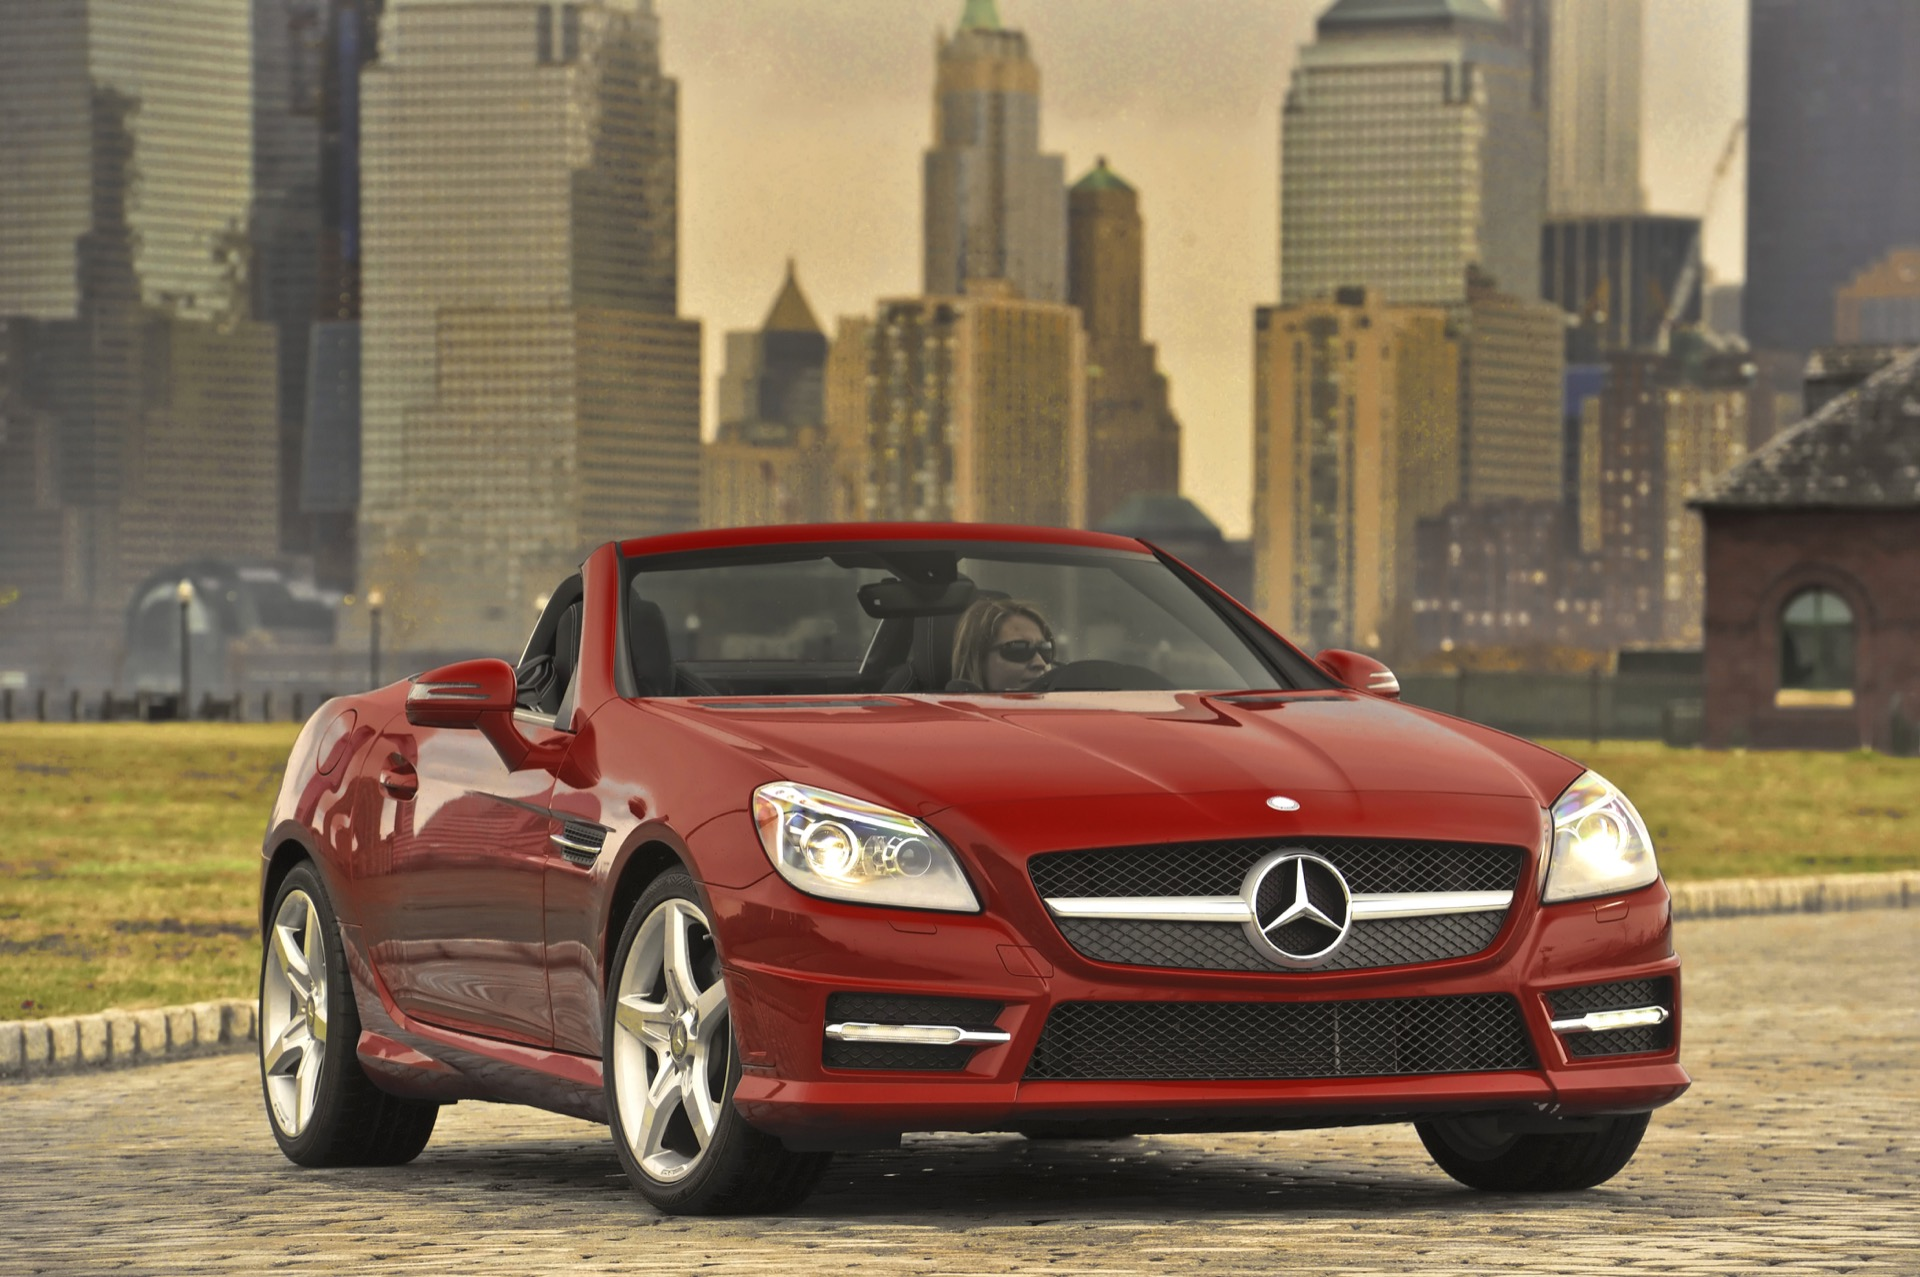 2016 Mercedes Benz Slk Class Styling Review The Car